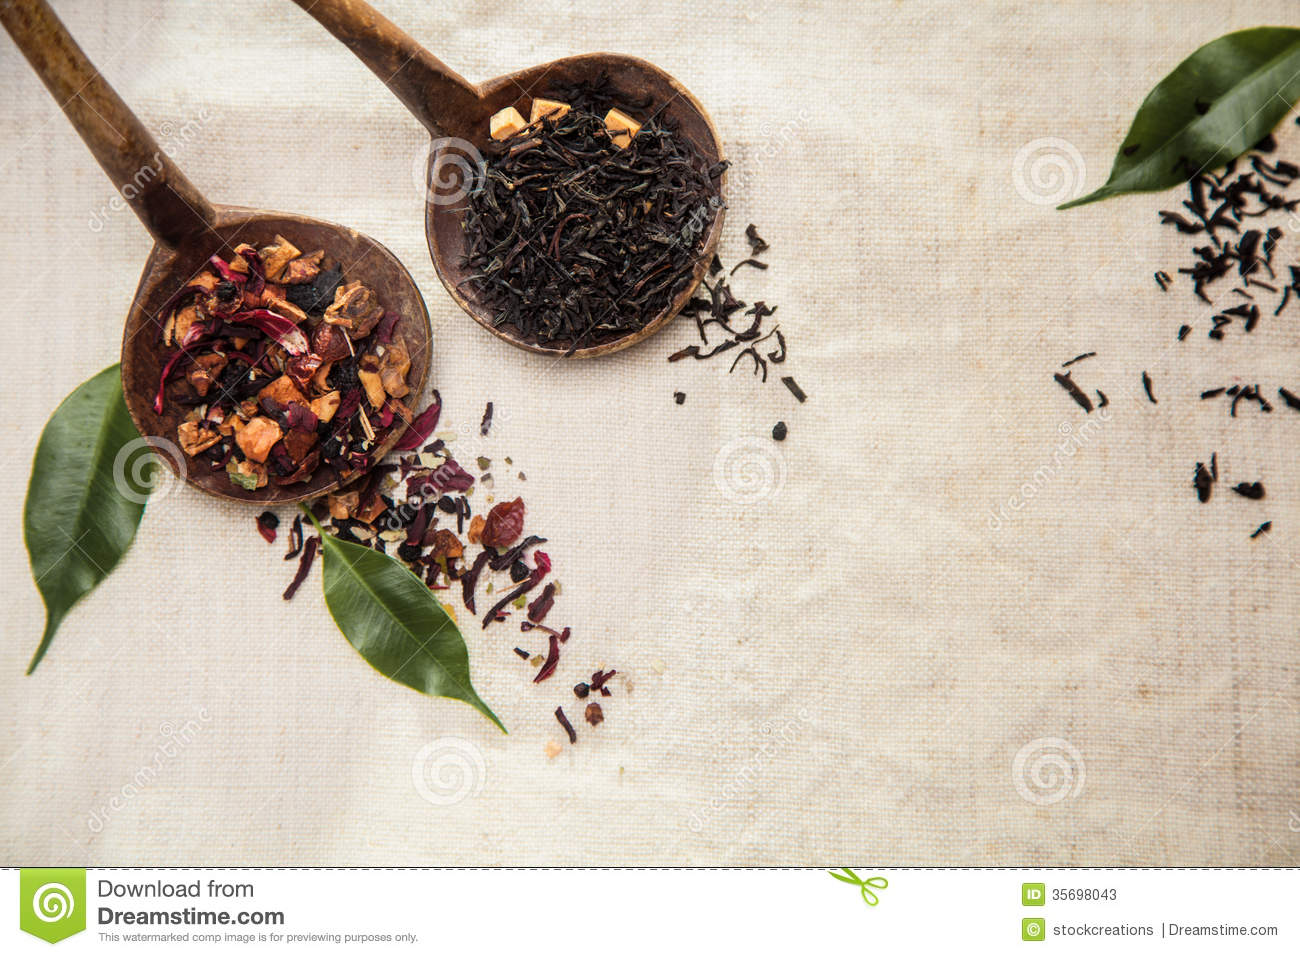 Dried loose-leaf tea